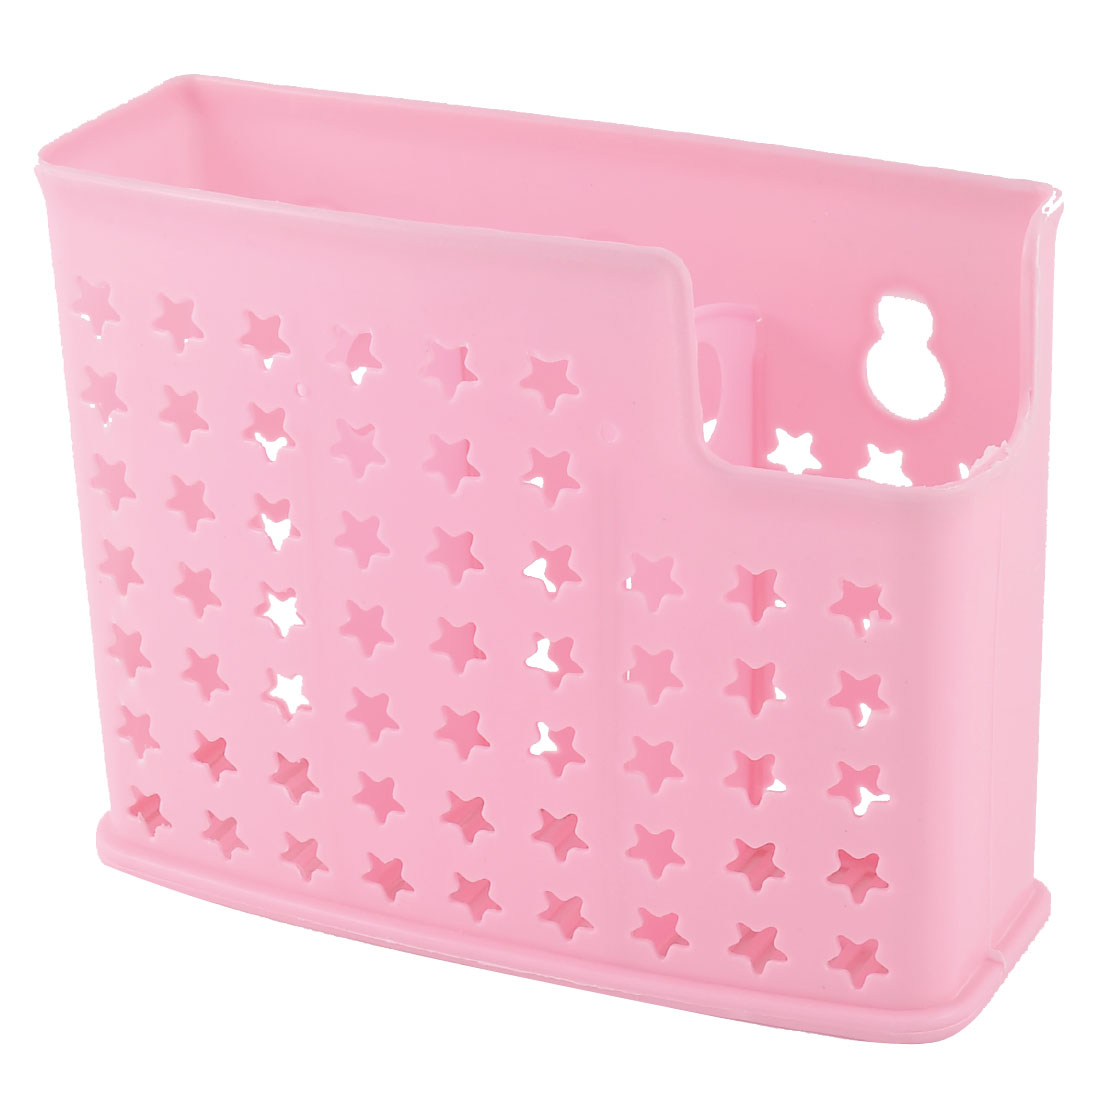 Kitchenware Plastic 3 Compartments Hollow Out Stars Dripping Chopsticks Spoon Case Holder Pink